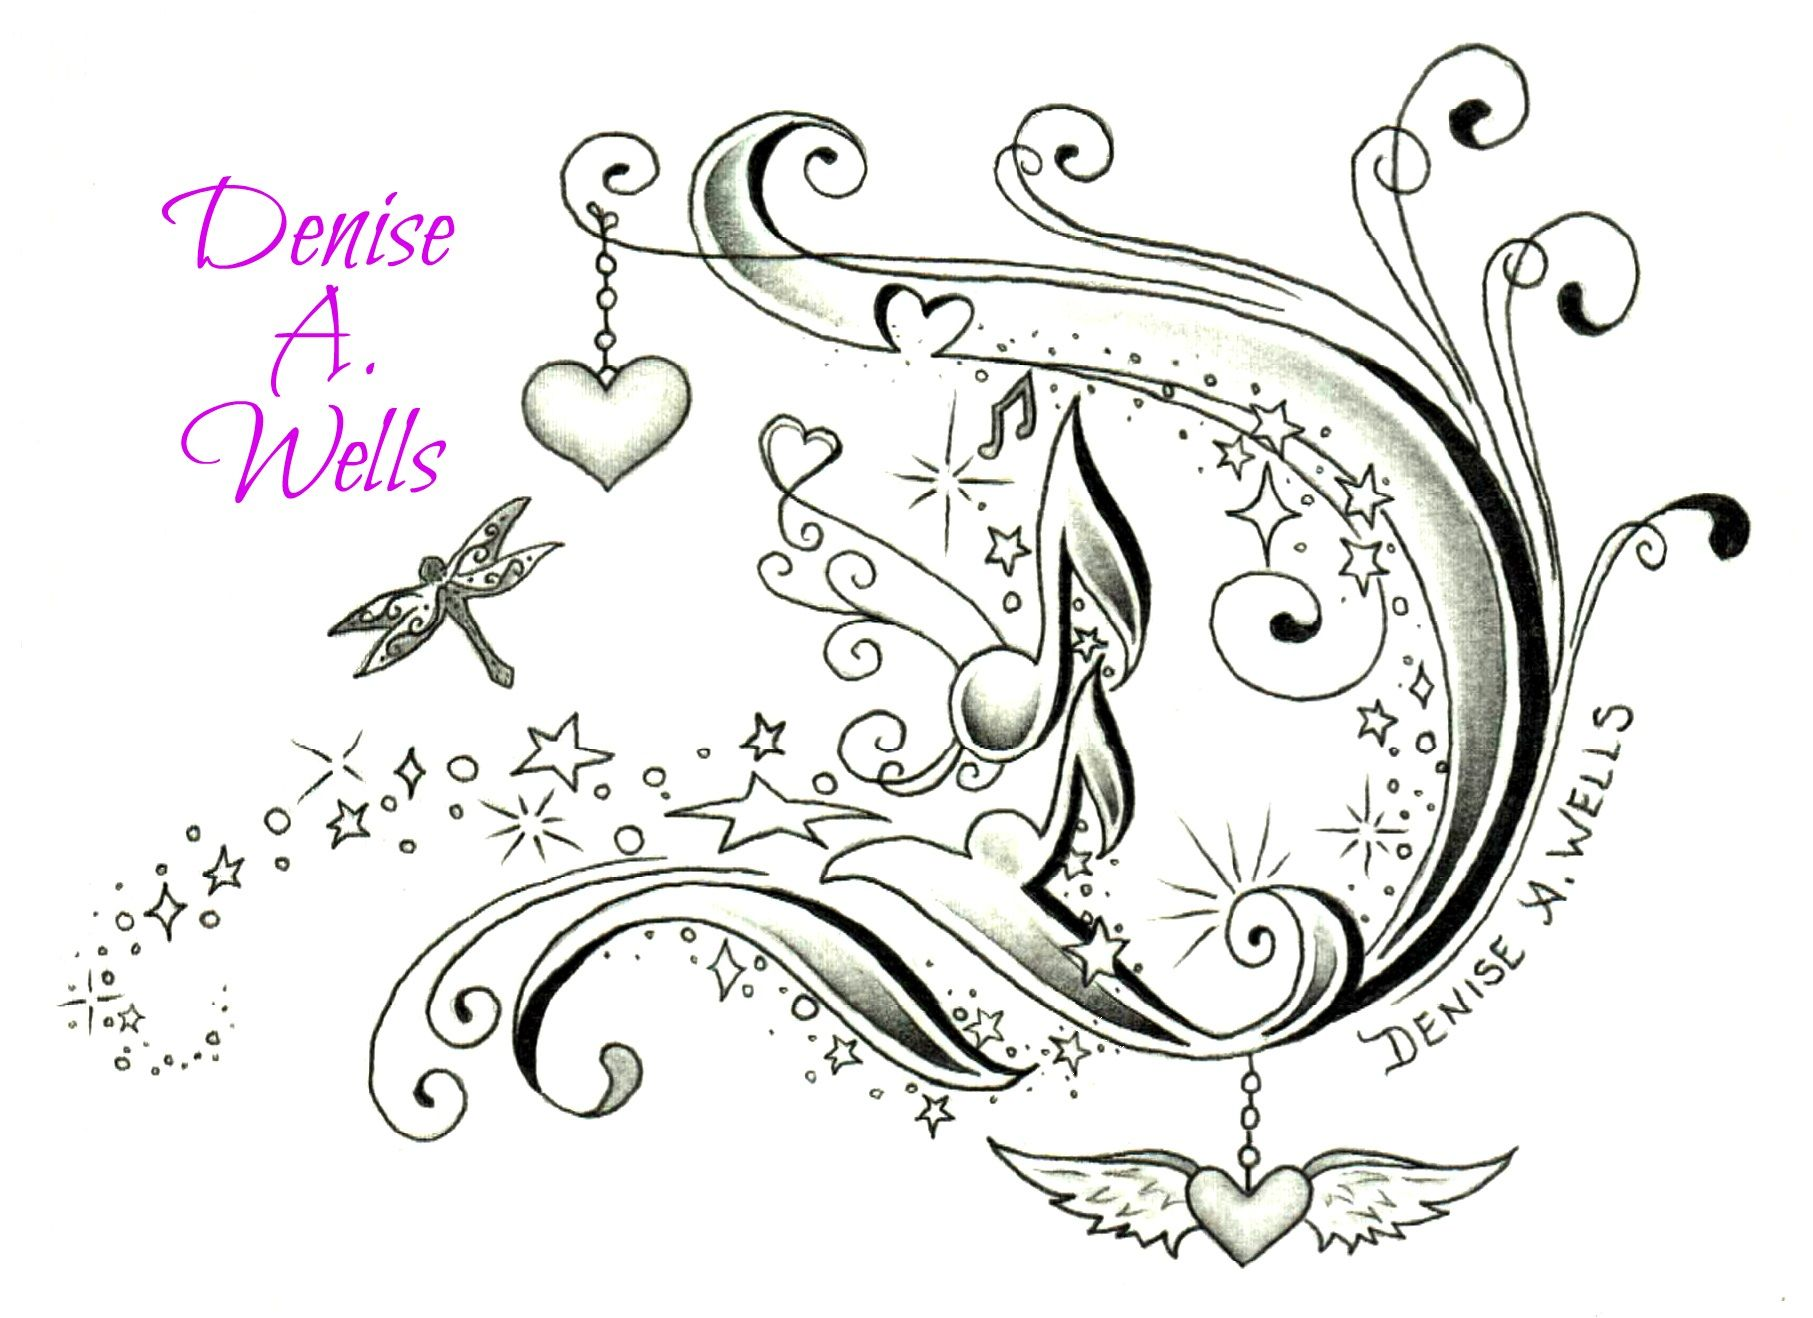 Fancy letter D Tattoo design by Denise A. Wells including